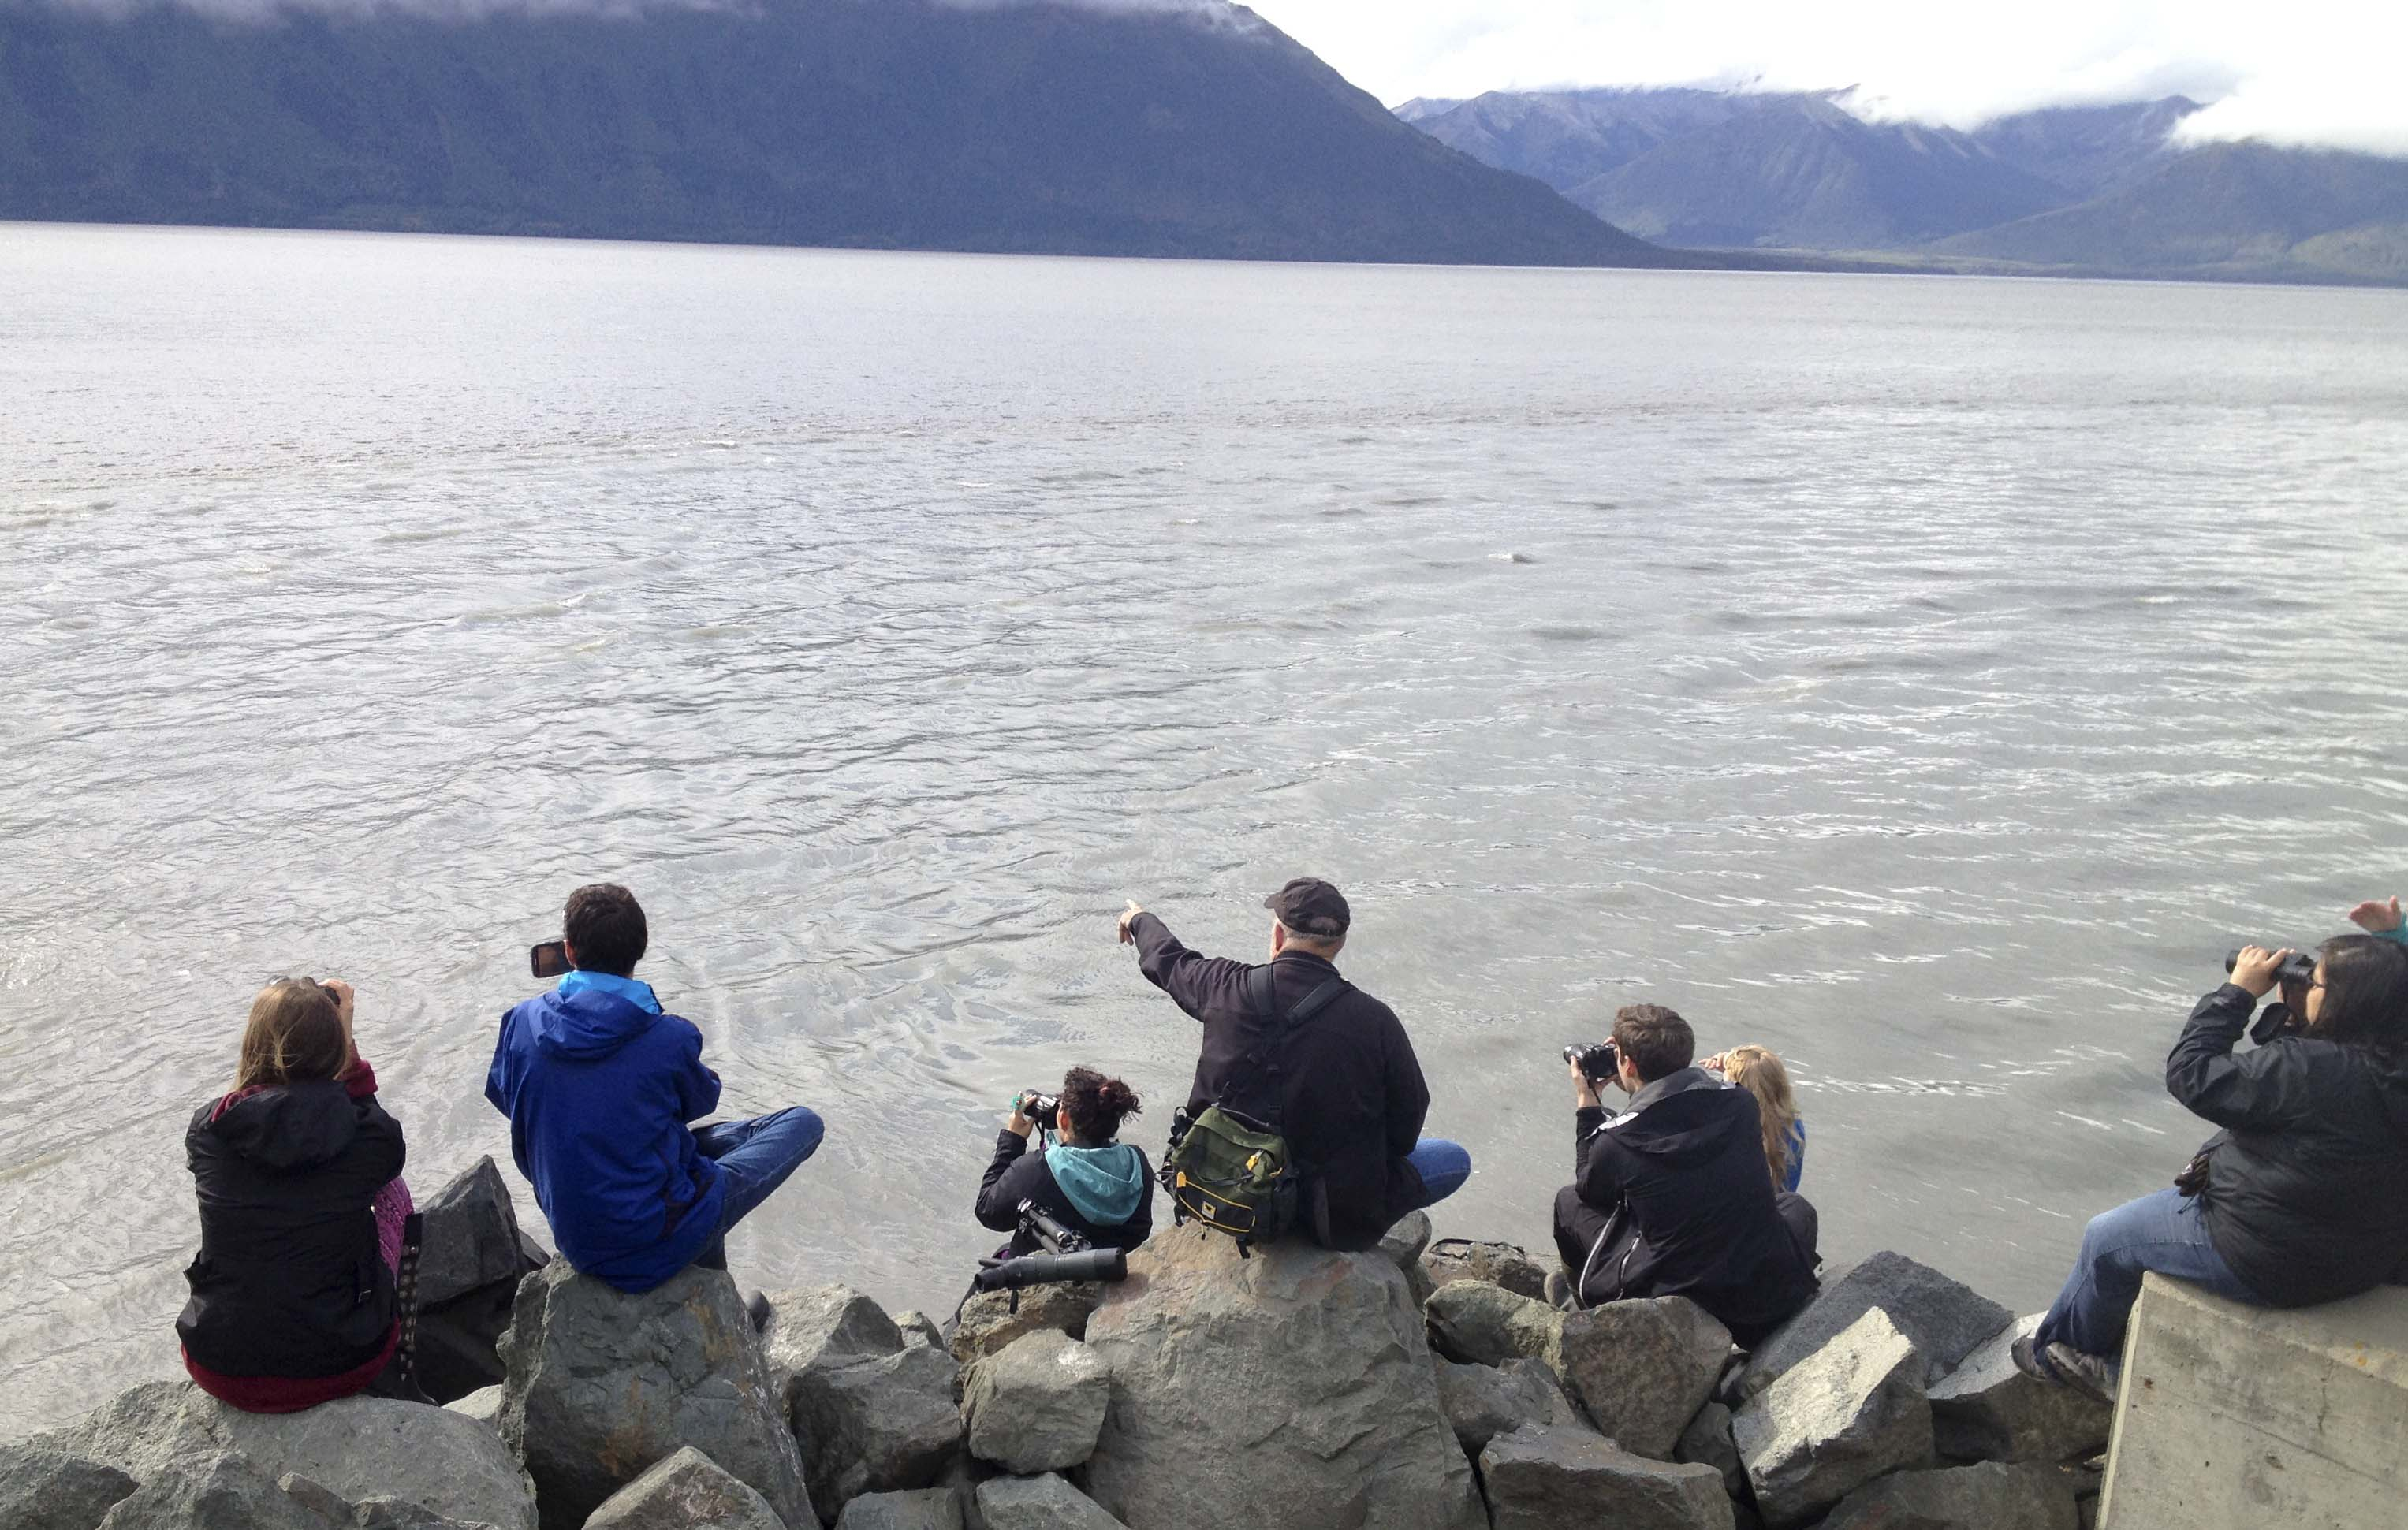 Instructor points to something in the water as students point cameras